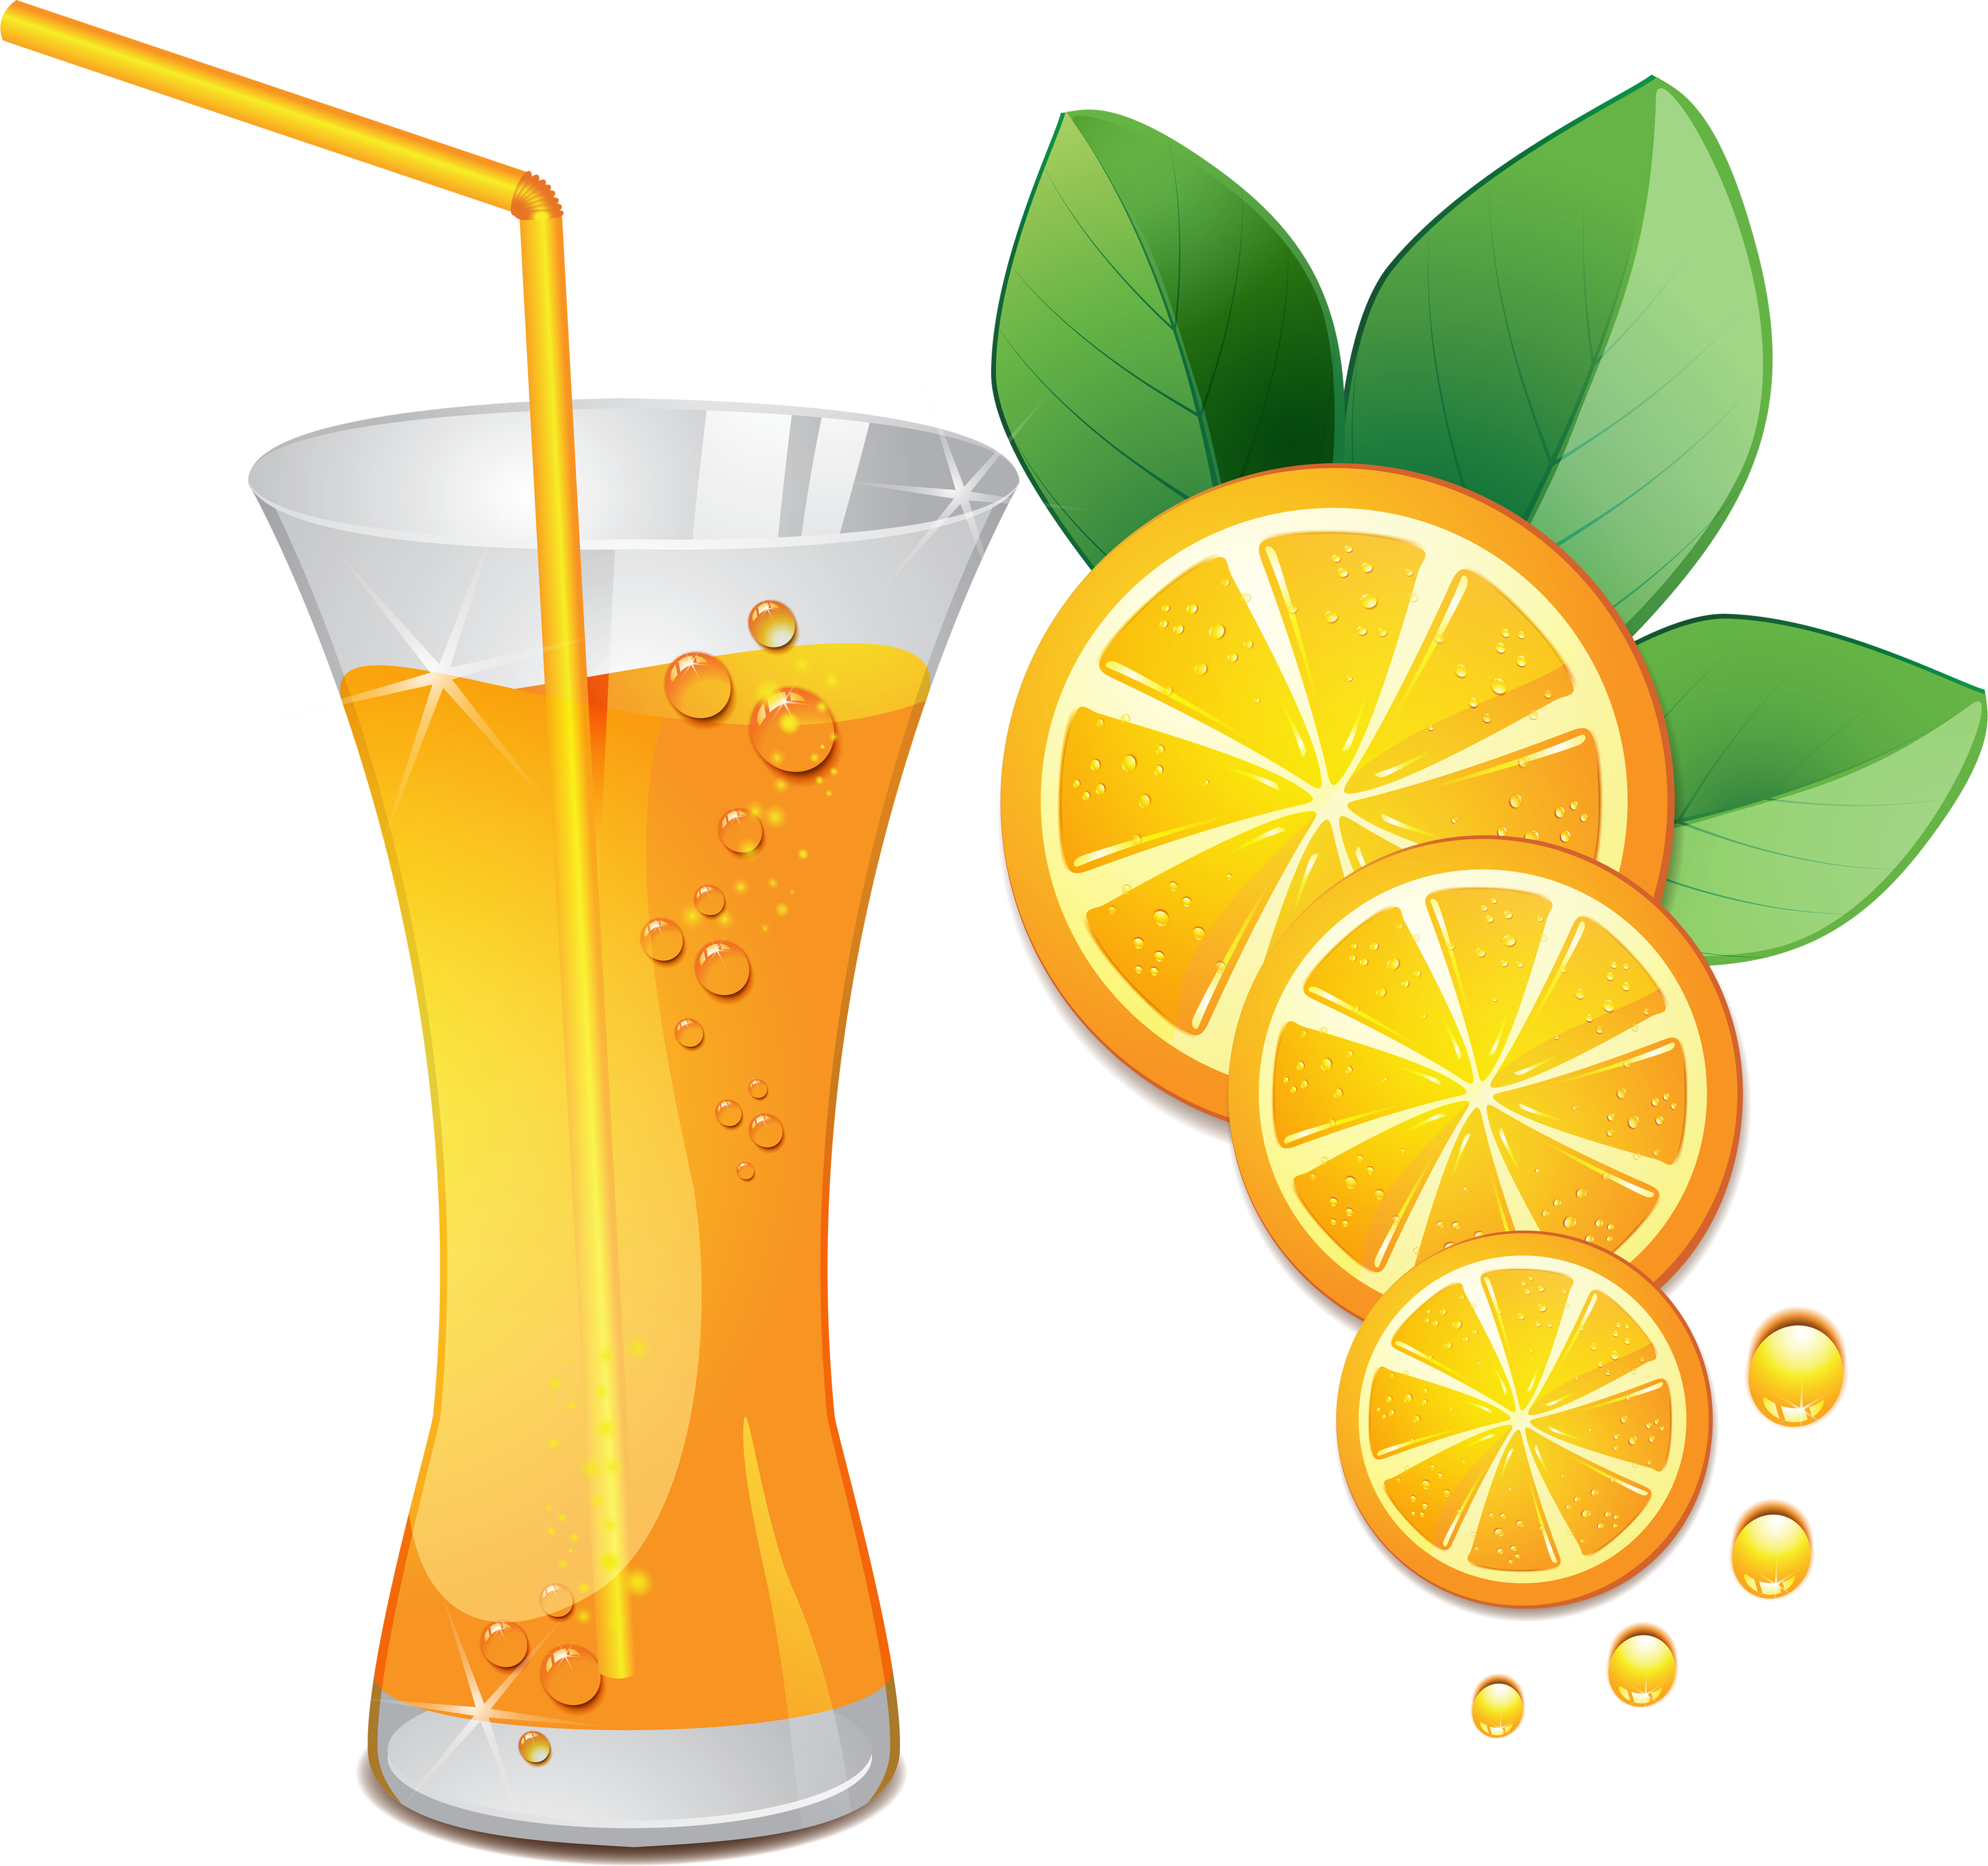 Orange juice juice images free download clip art